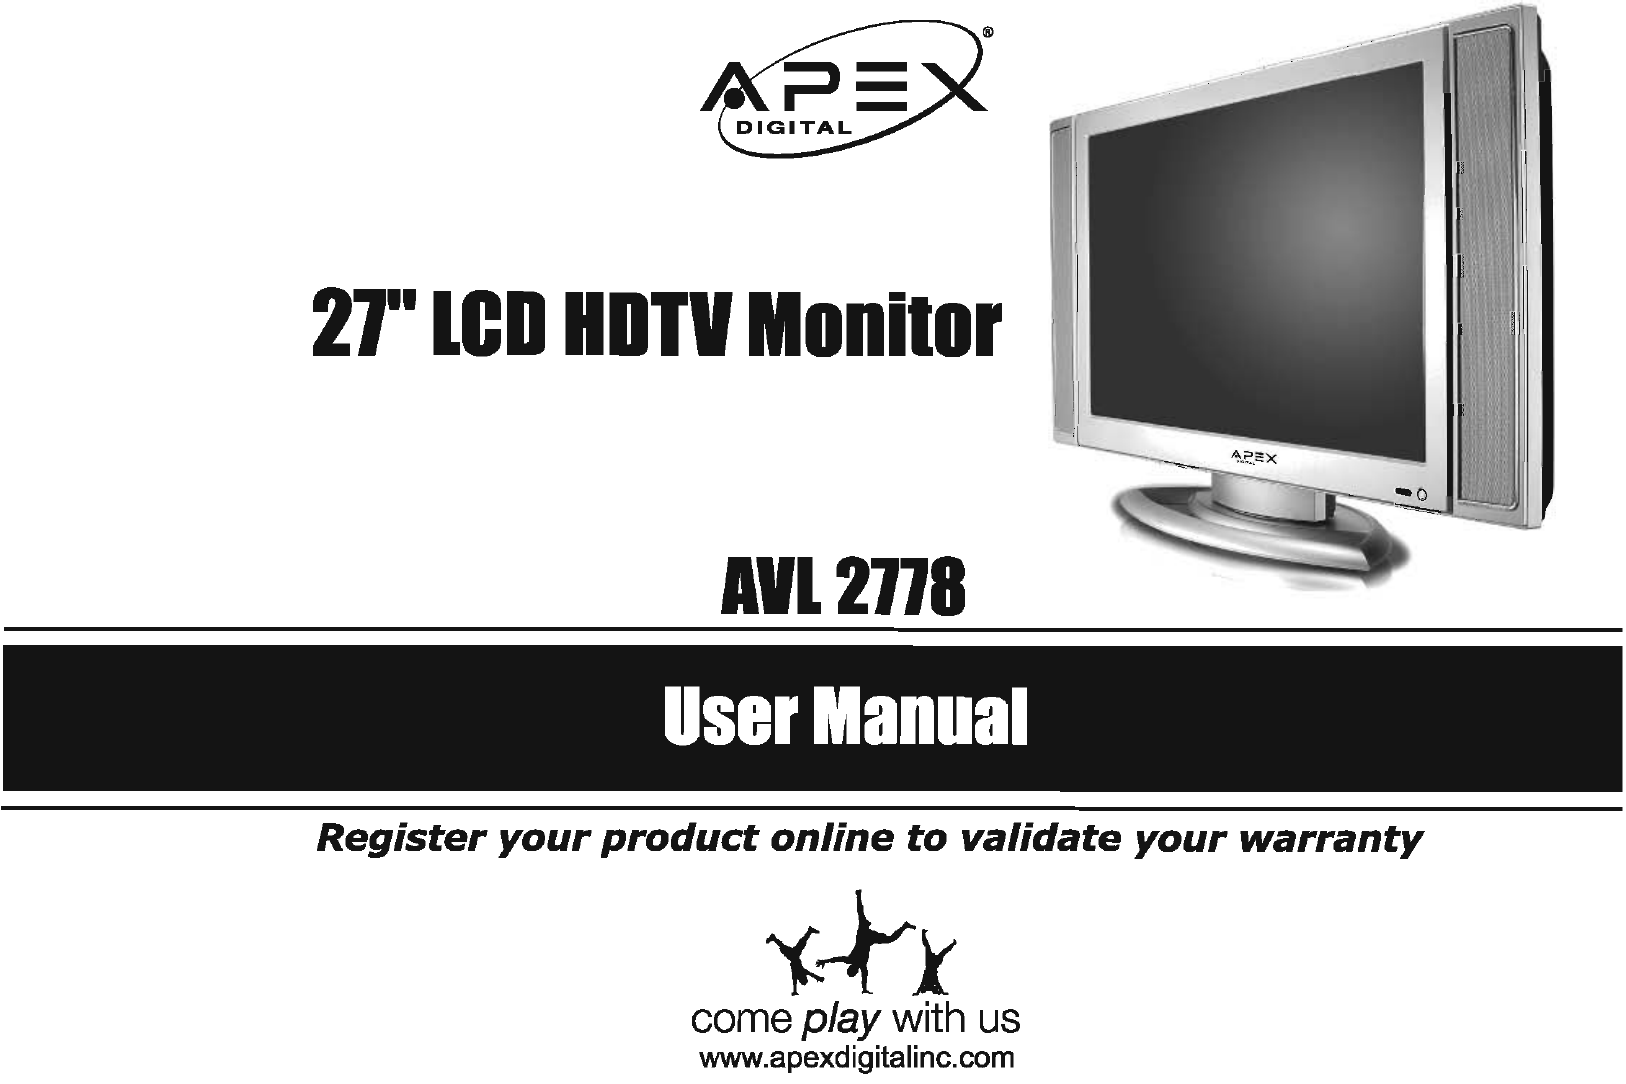 apex digital computer monitor avl 2778 user guide manualsonline com rh office manualsonline com Apex Digital TV Codes Apex Digital Antenna